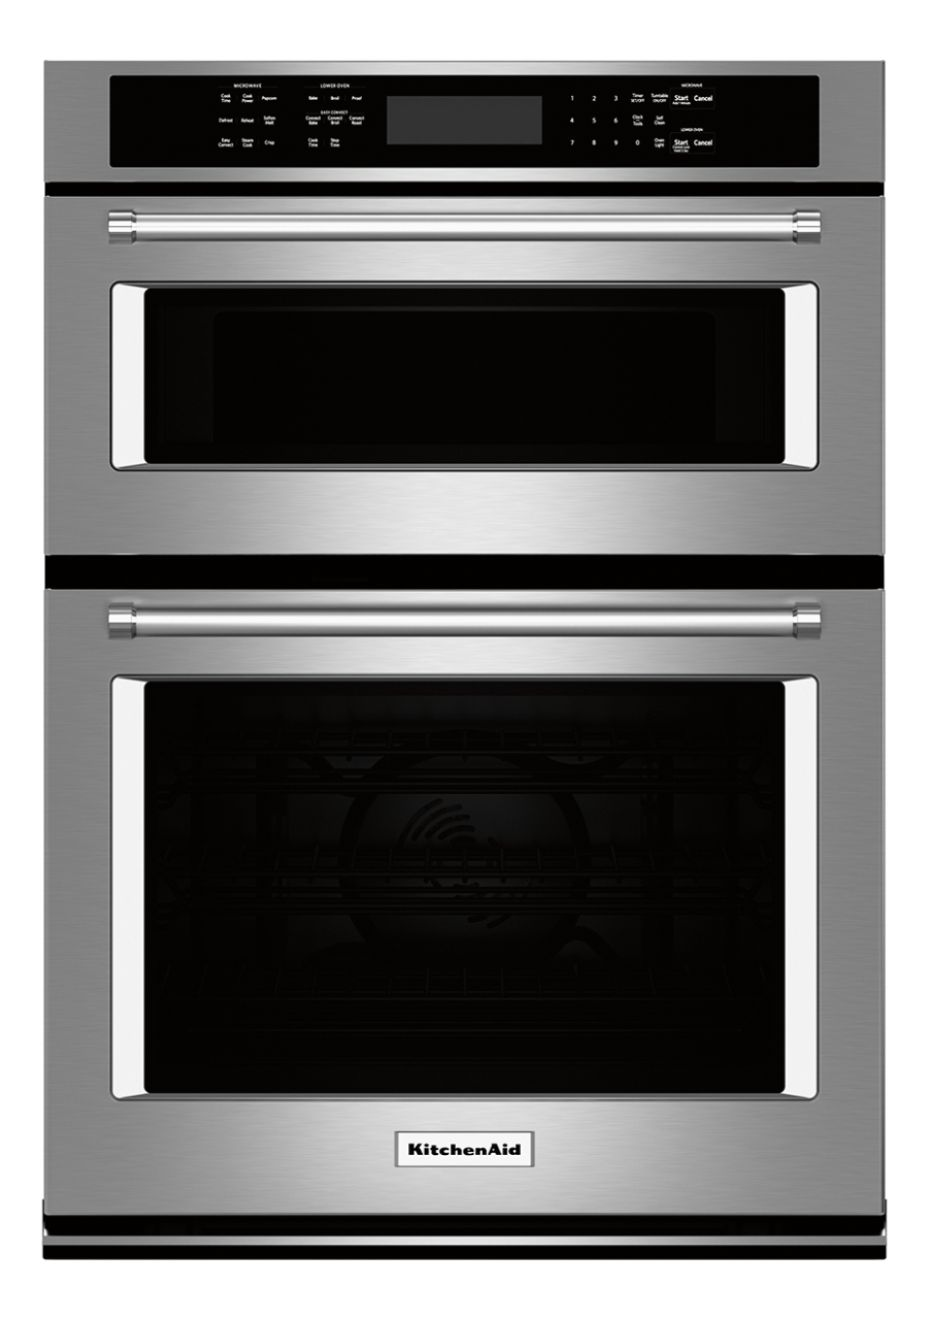 medium resolution of kitchenaid 30 single electric convection wall oven with built in further on kitchenaid microwave circuit diagram wiring photos for help